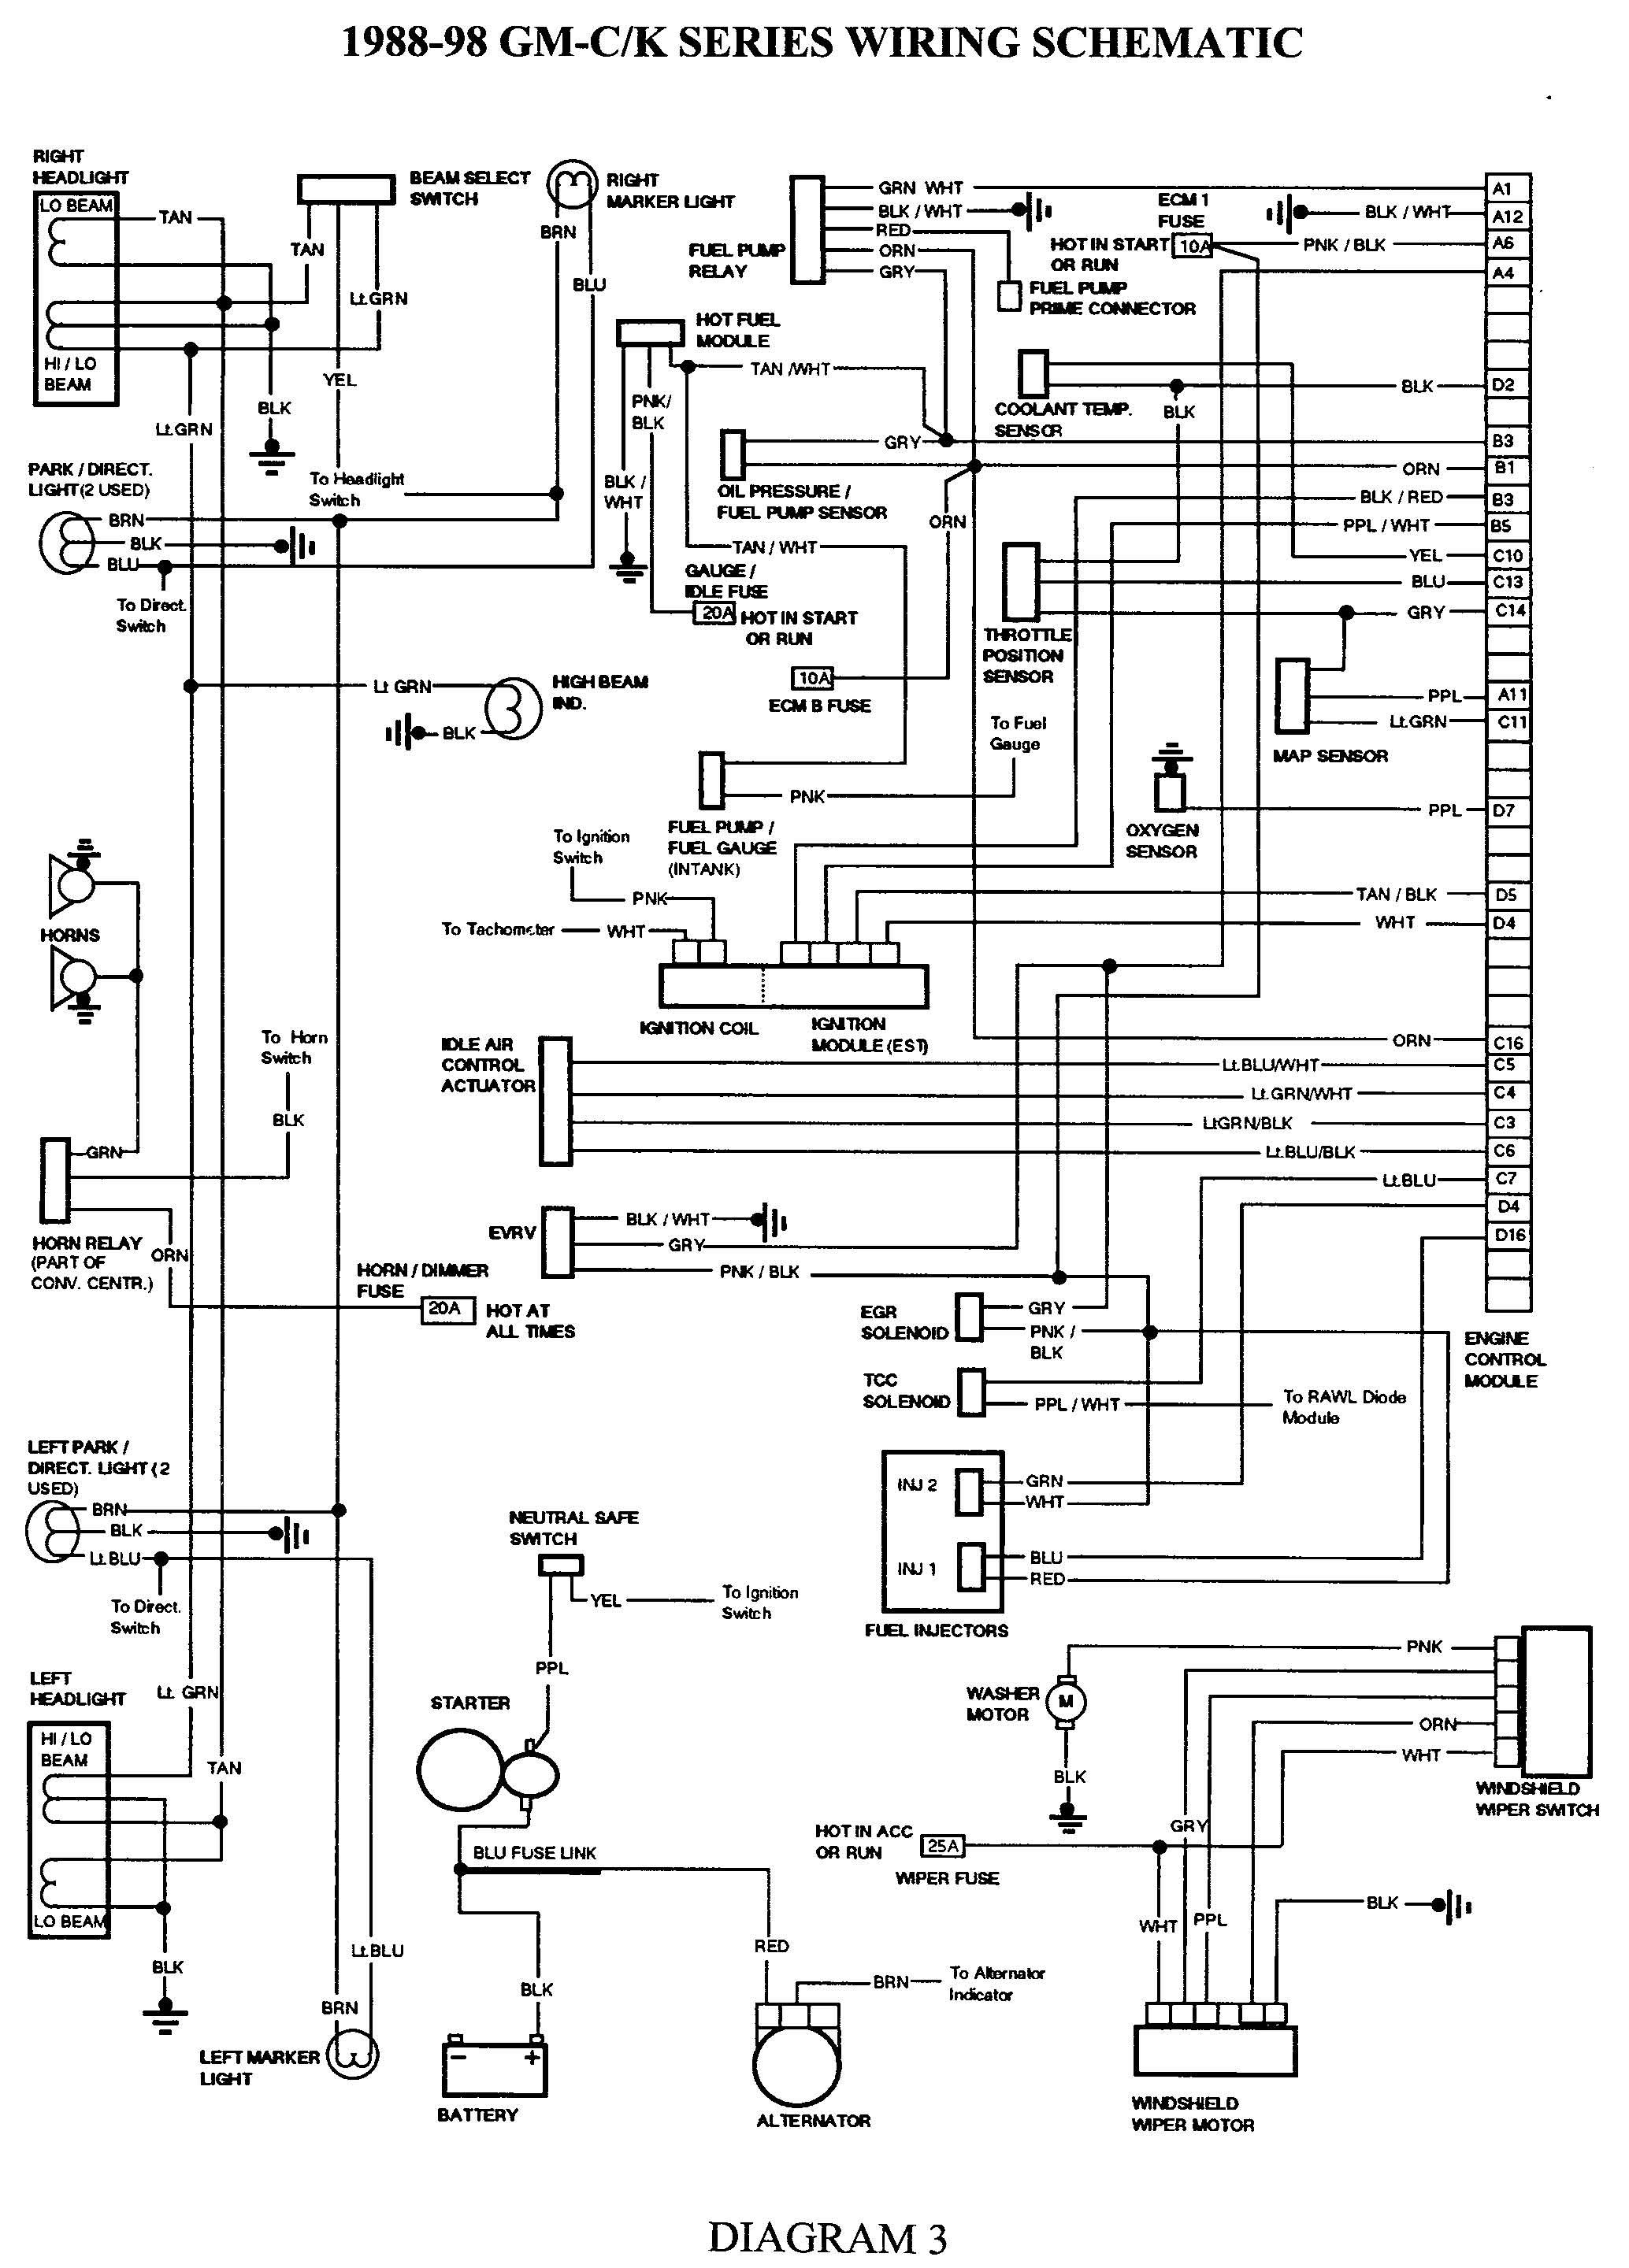 chevy silverado wiring schematics detailed schematics diagram rh  antonartgallery com 2007 Saturn Ion Wiring-Diagram 98 saturn wiring harness  diagram